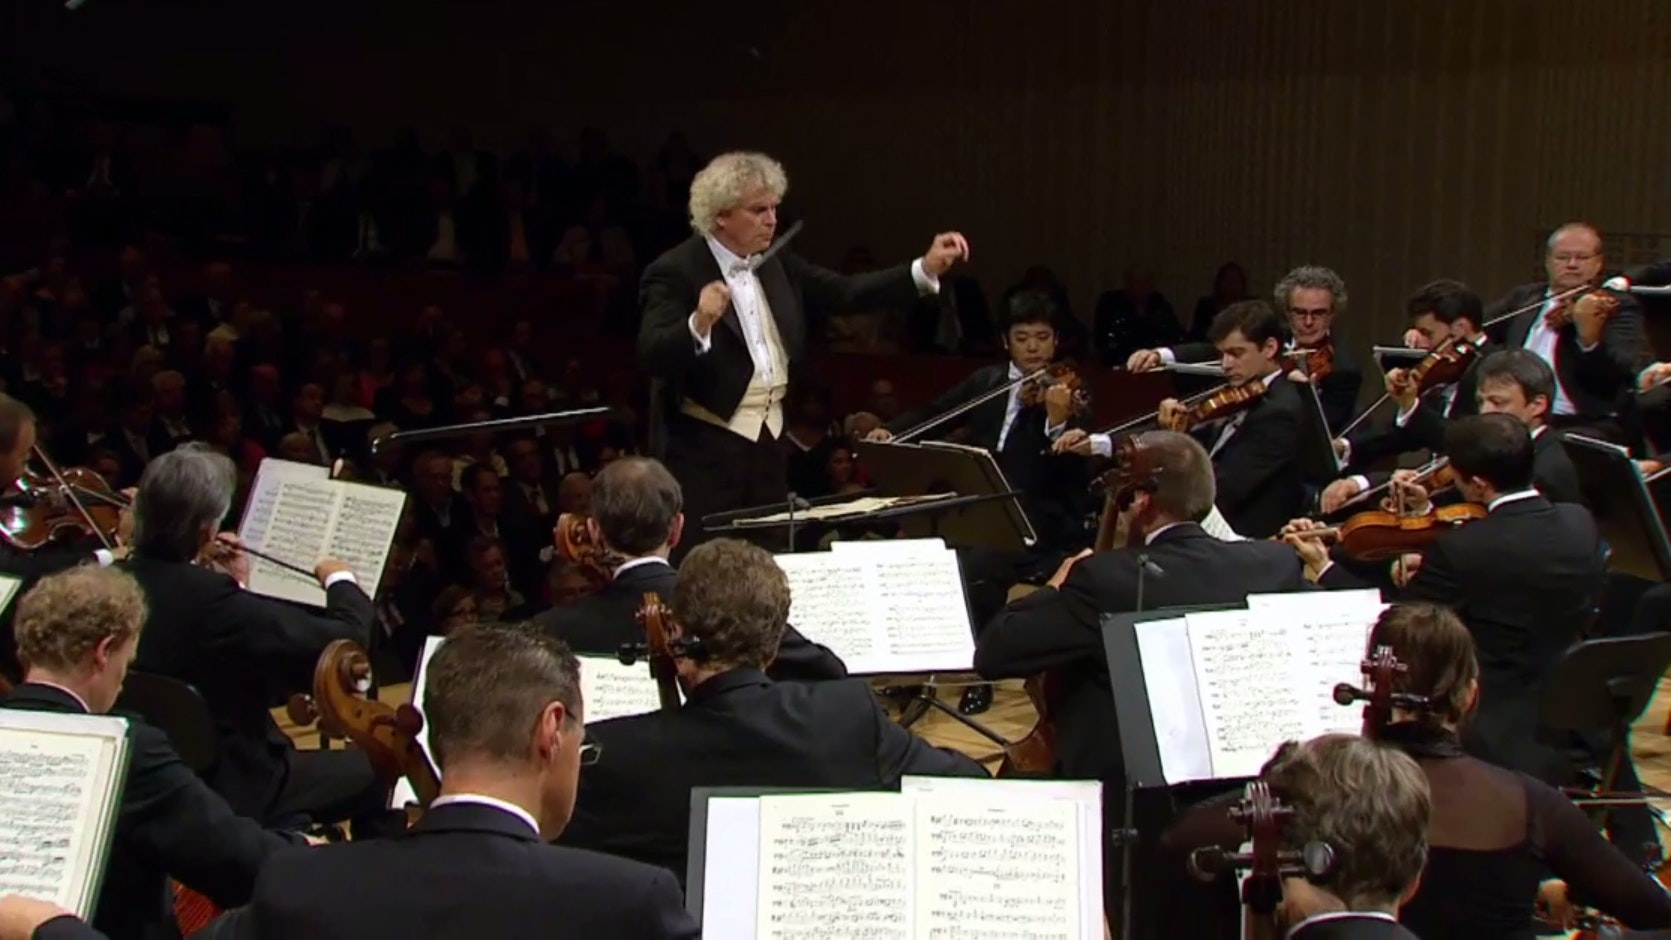 Sir Simon Rattle conducts Ligeti, Wagner, Sibelius, Debussy and Ravel